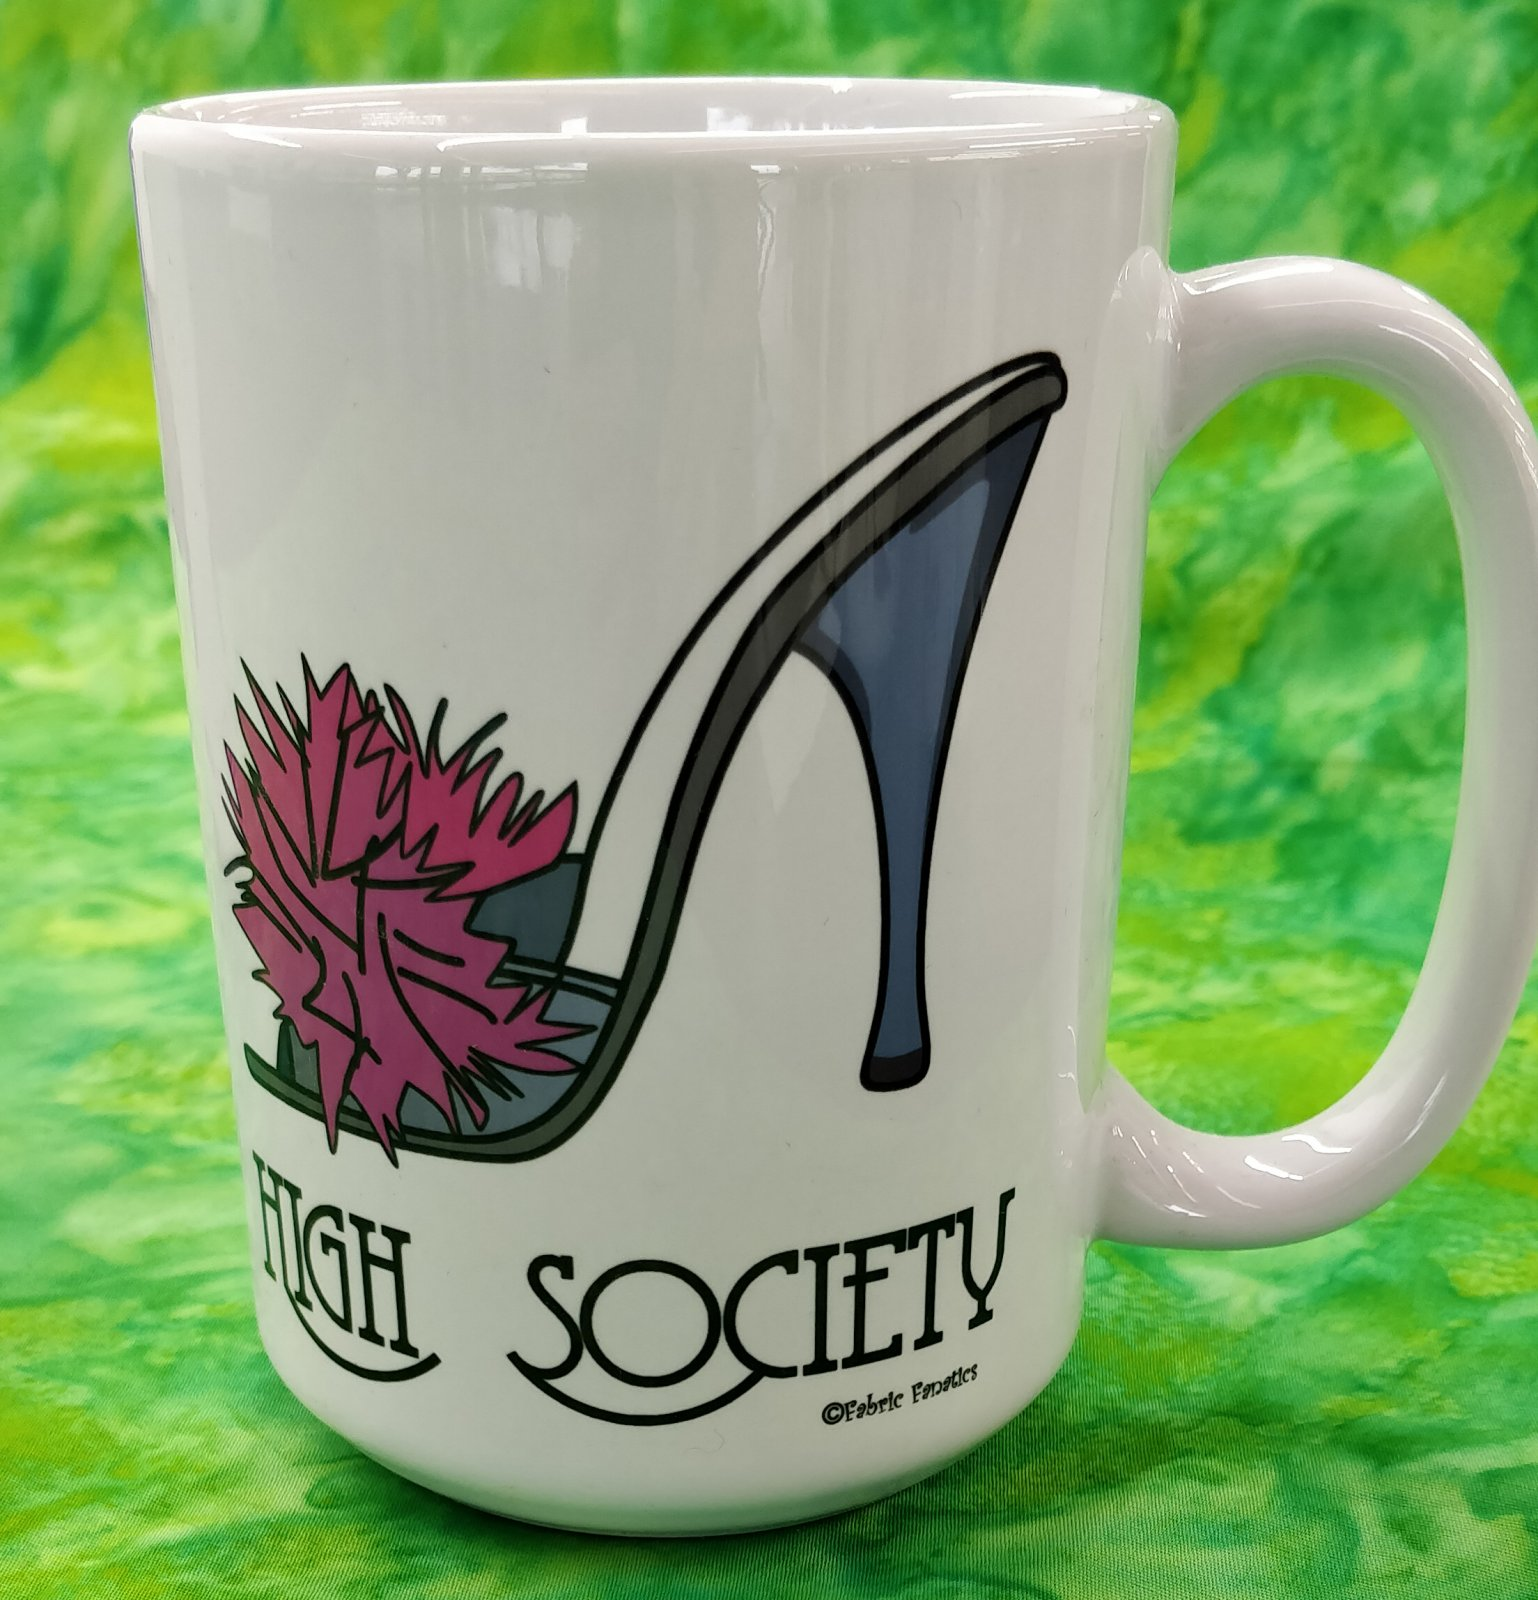 Mug - High Society - in store or curbside